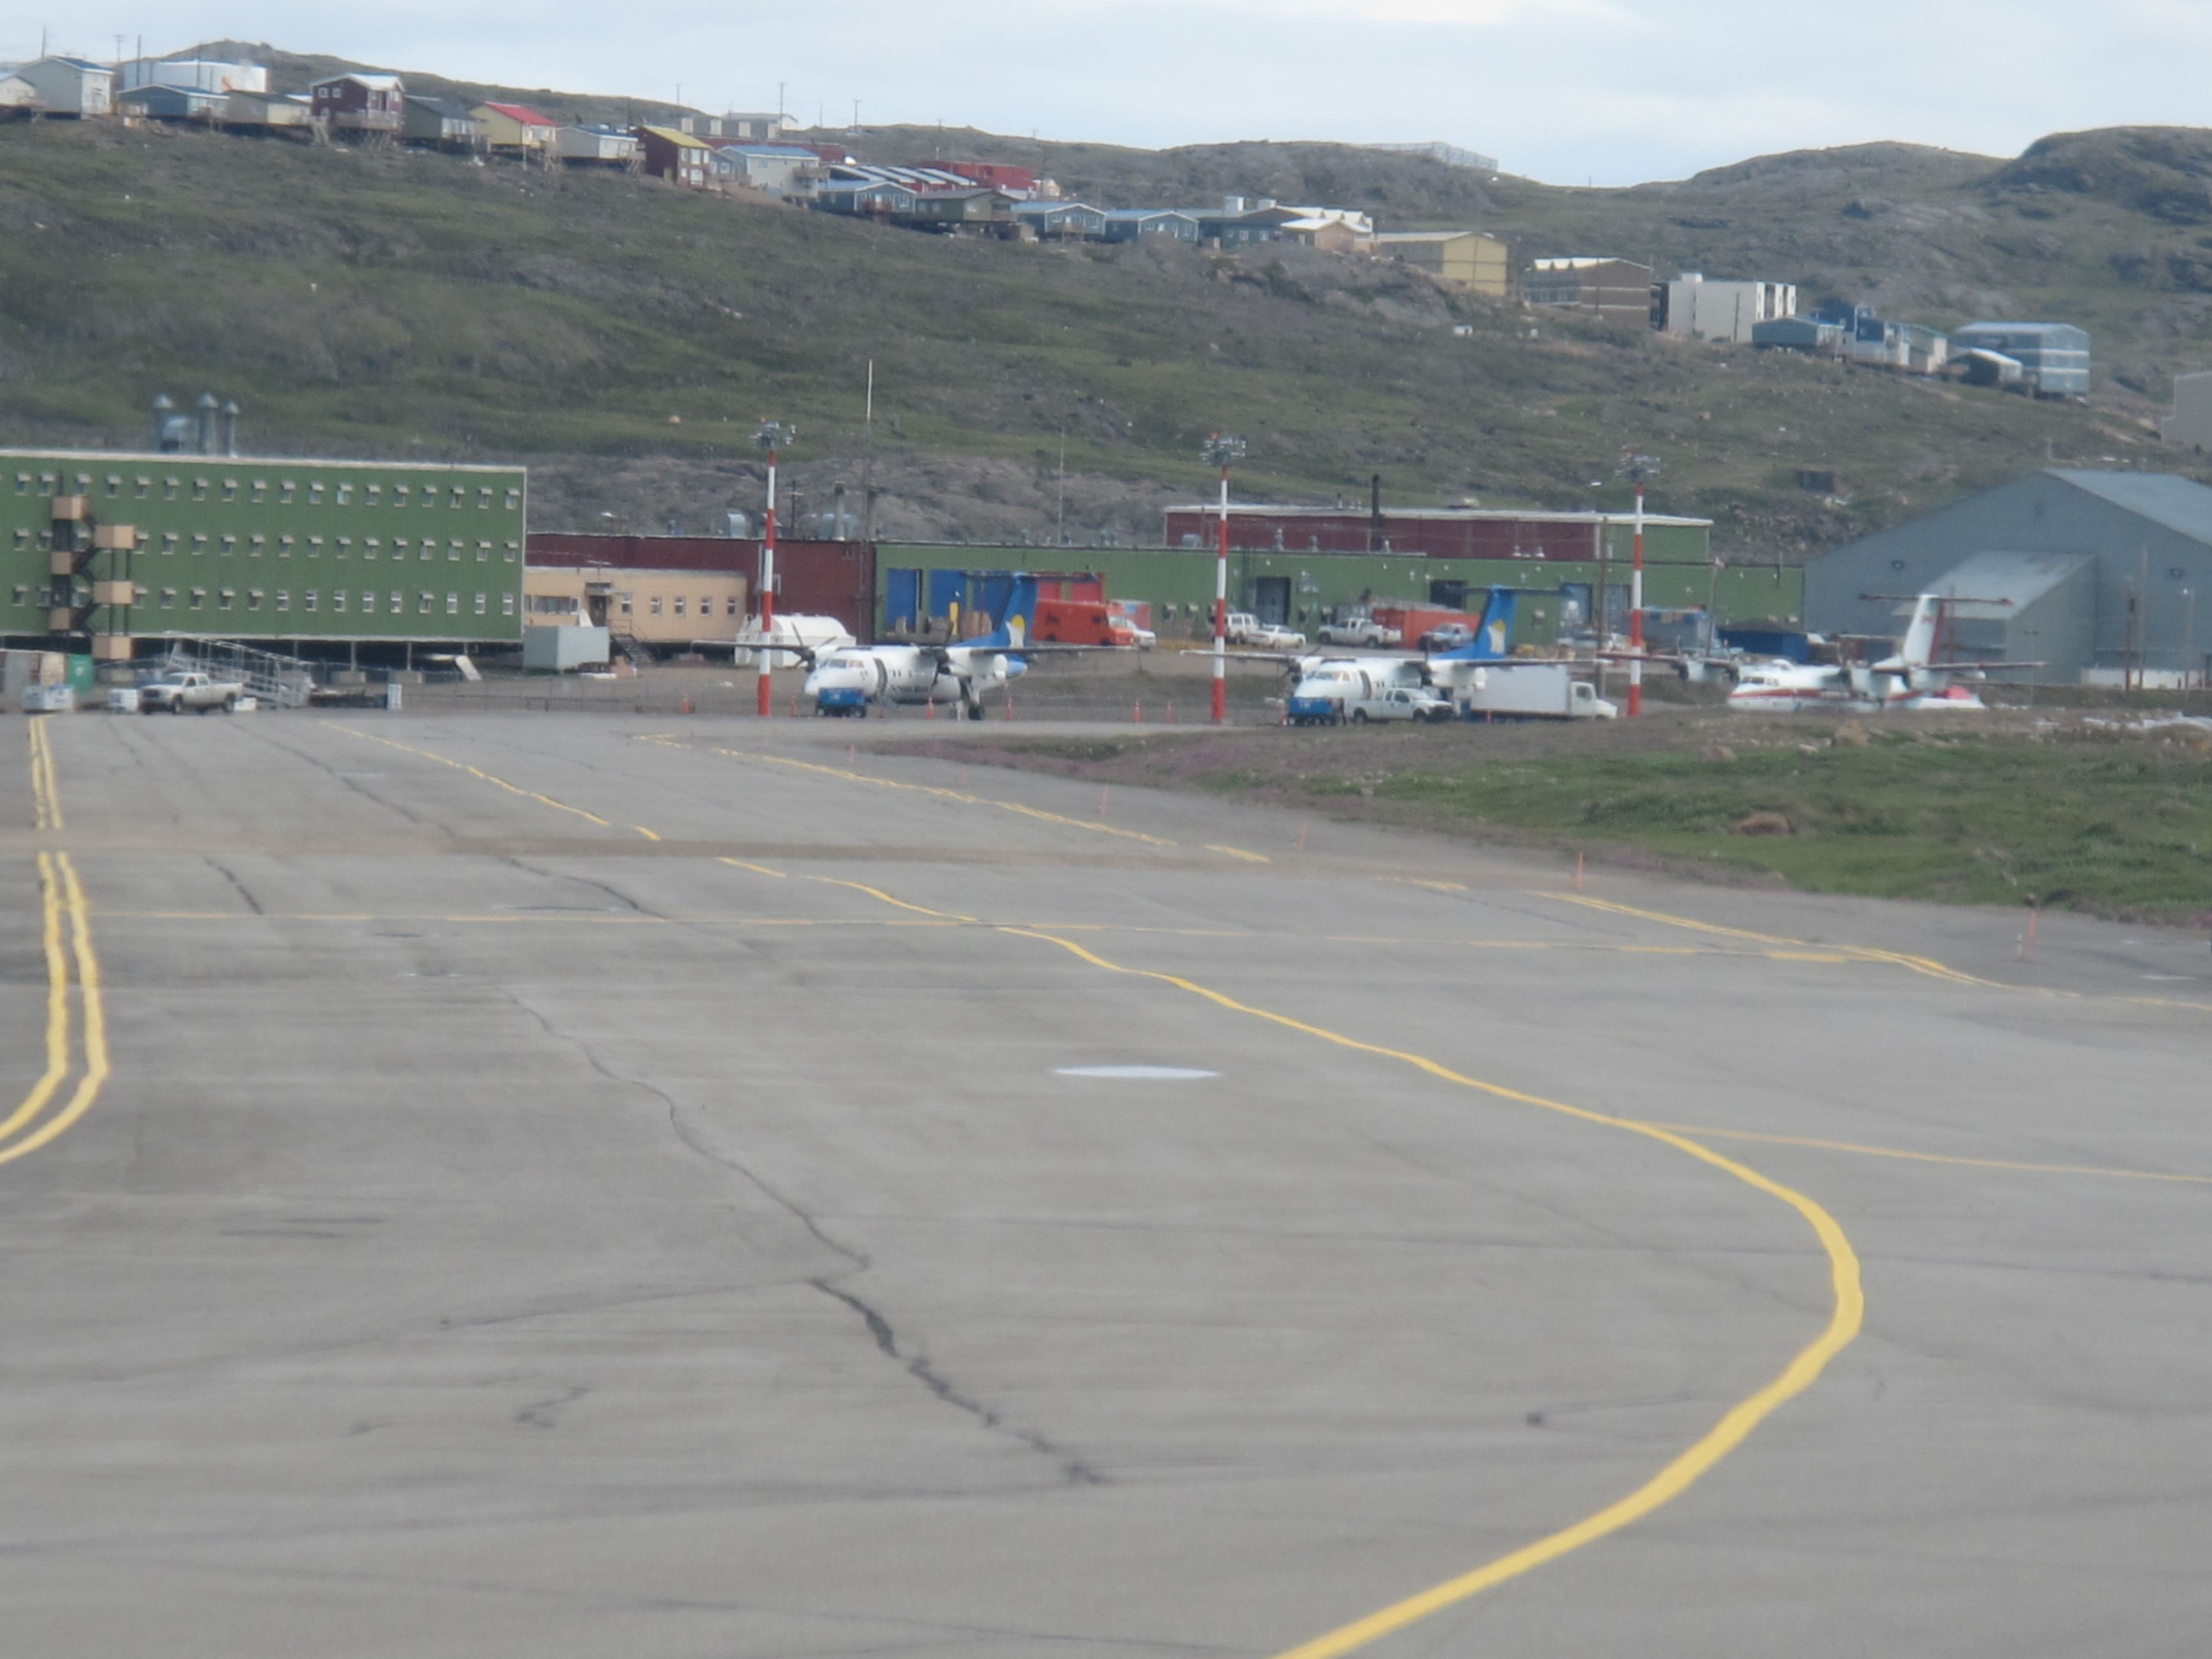 Image showing damage caused by permafrost thaw at the Iqaluit International Airport